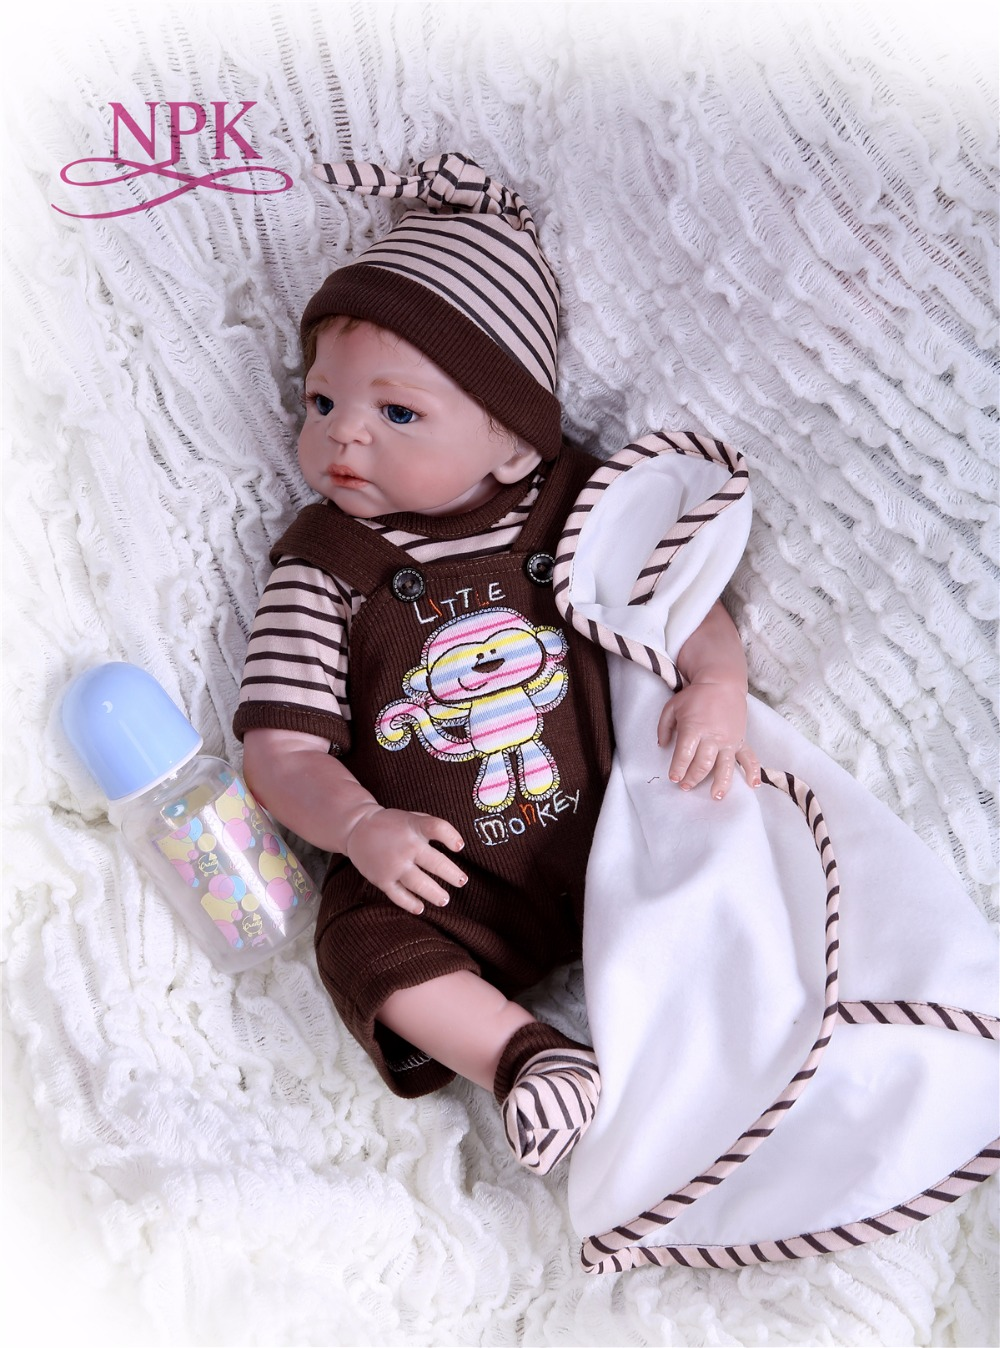 NPK New Arrival 48 cm Silicone Full Body Reborn Doll Real Life Princess Baby Doll For